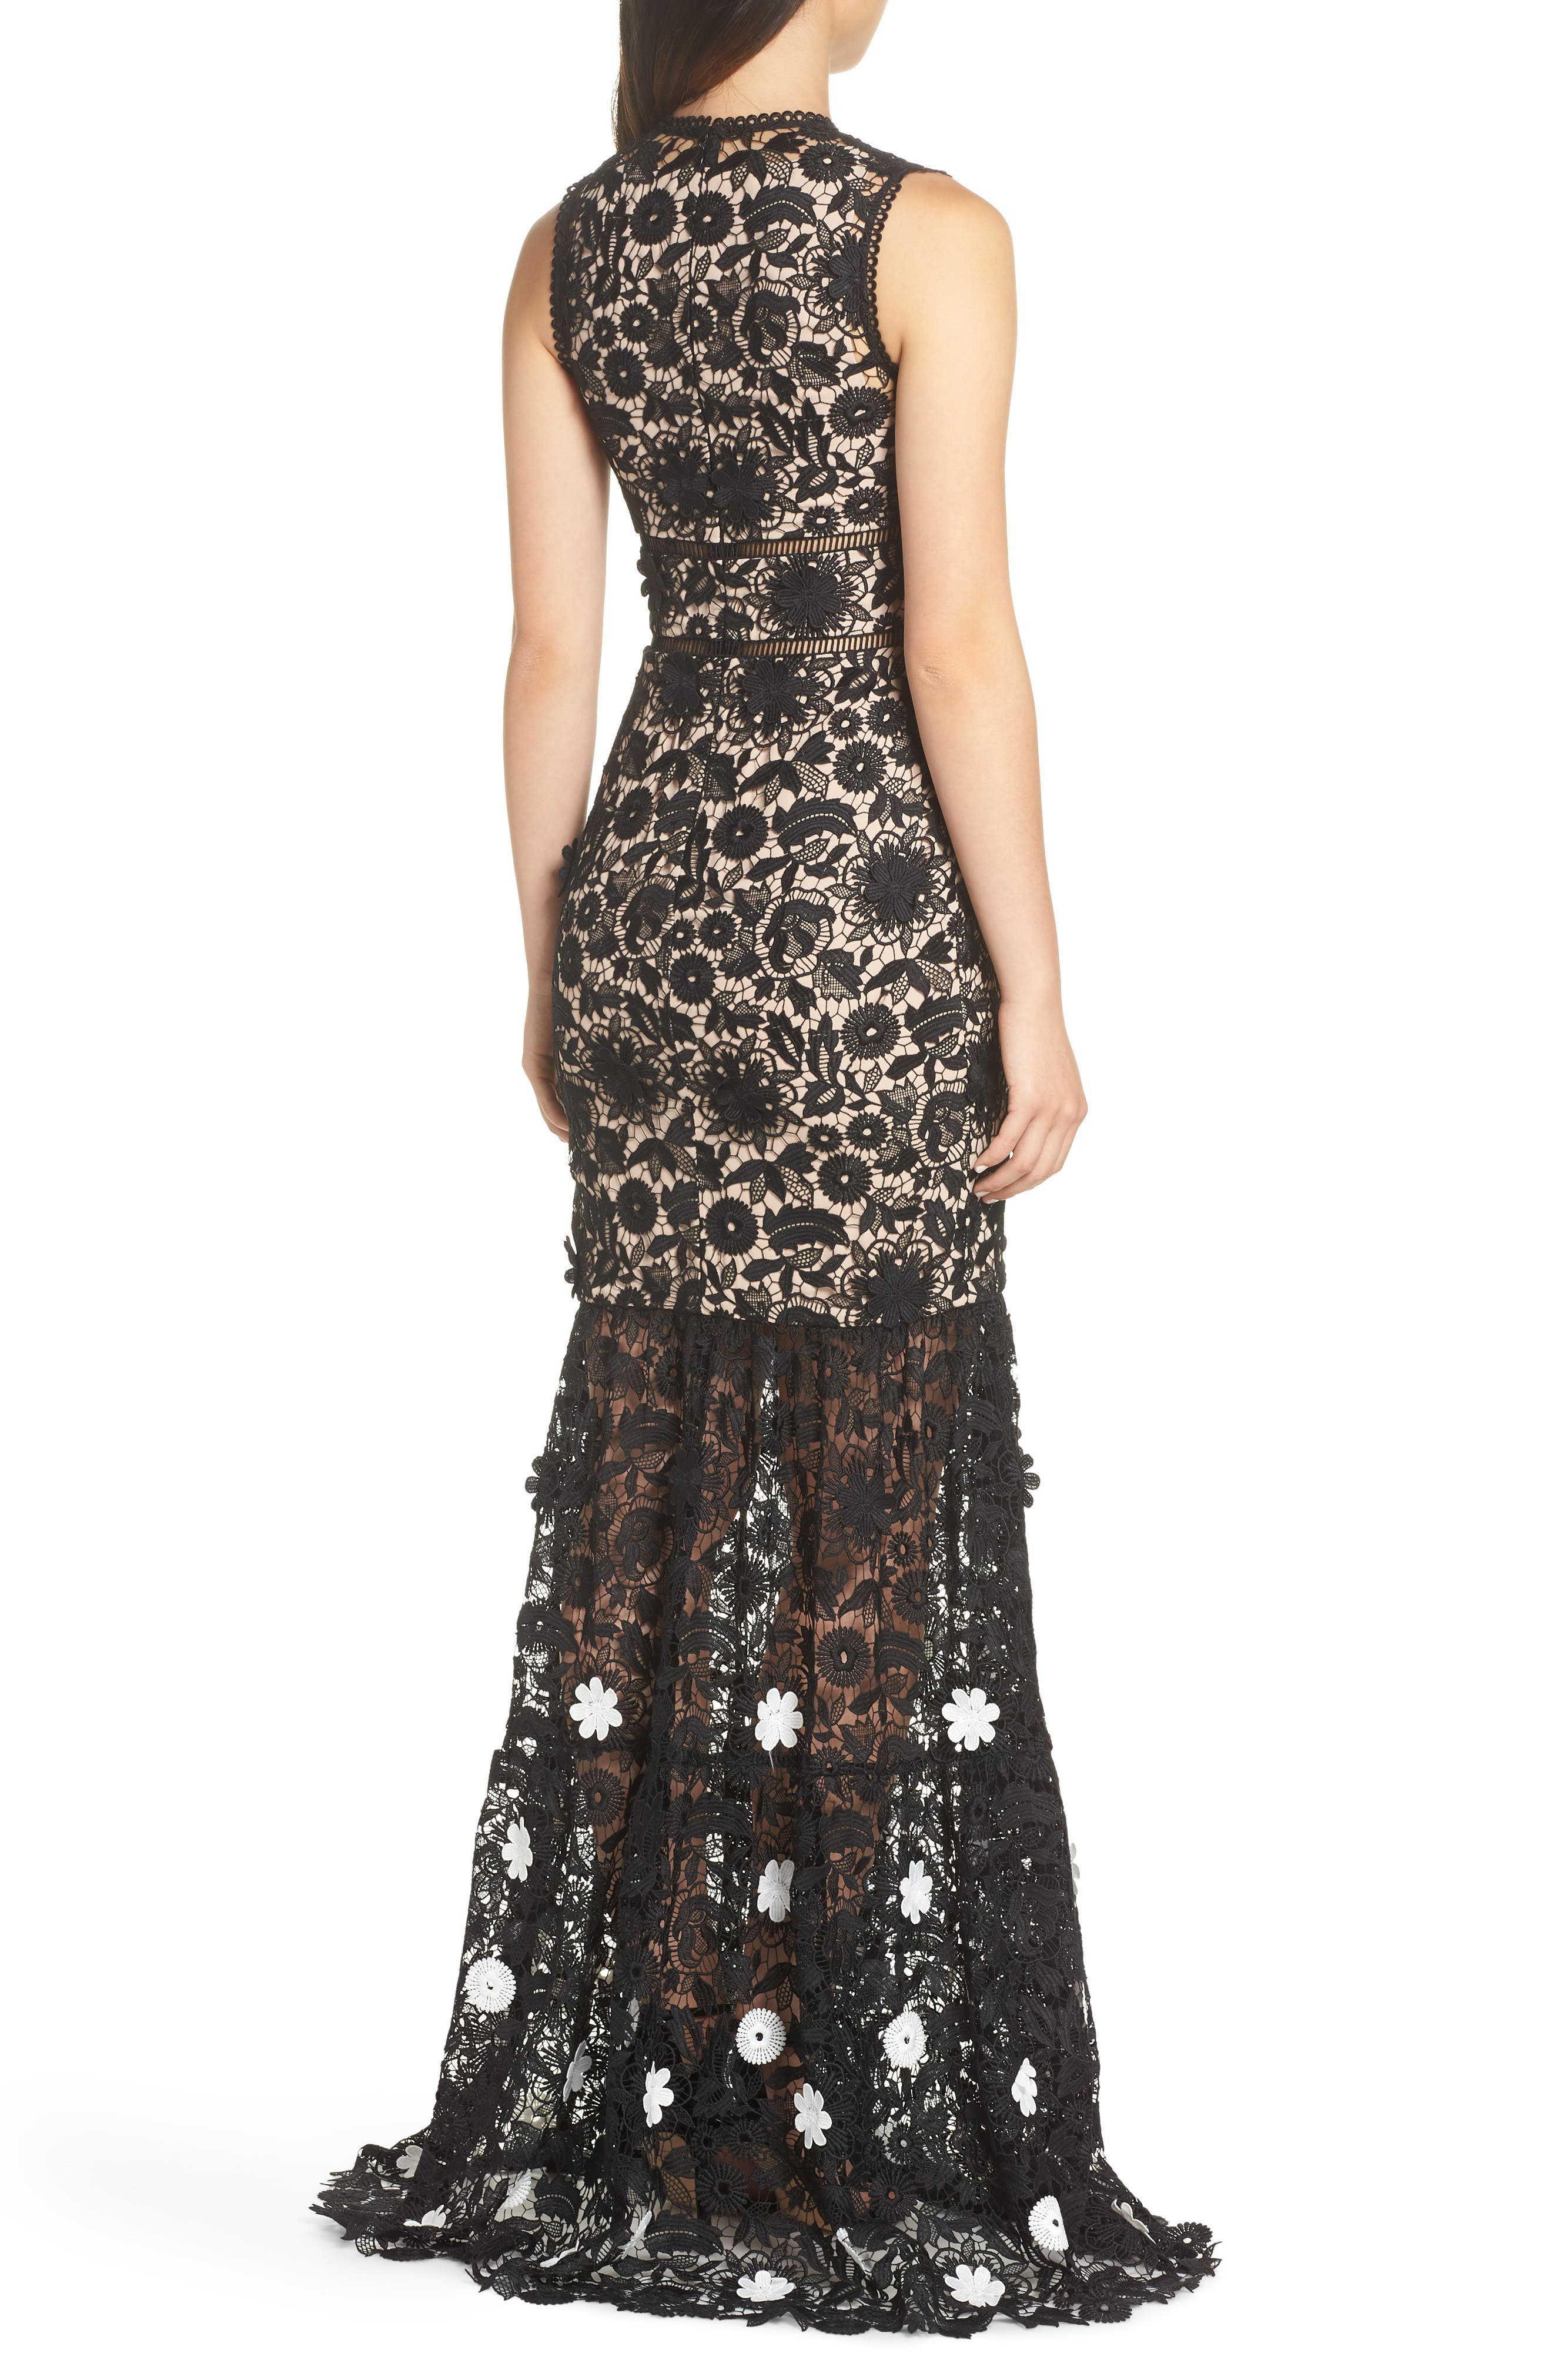 3D Black & White Floral Lace Gown,                             Alternate thumbnail 2, color,                             JET IVORY COMBO